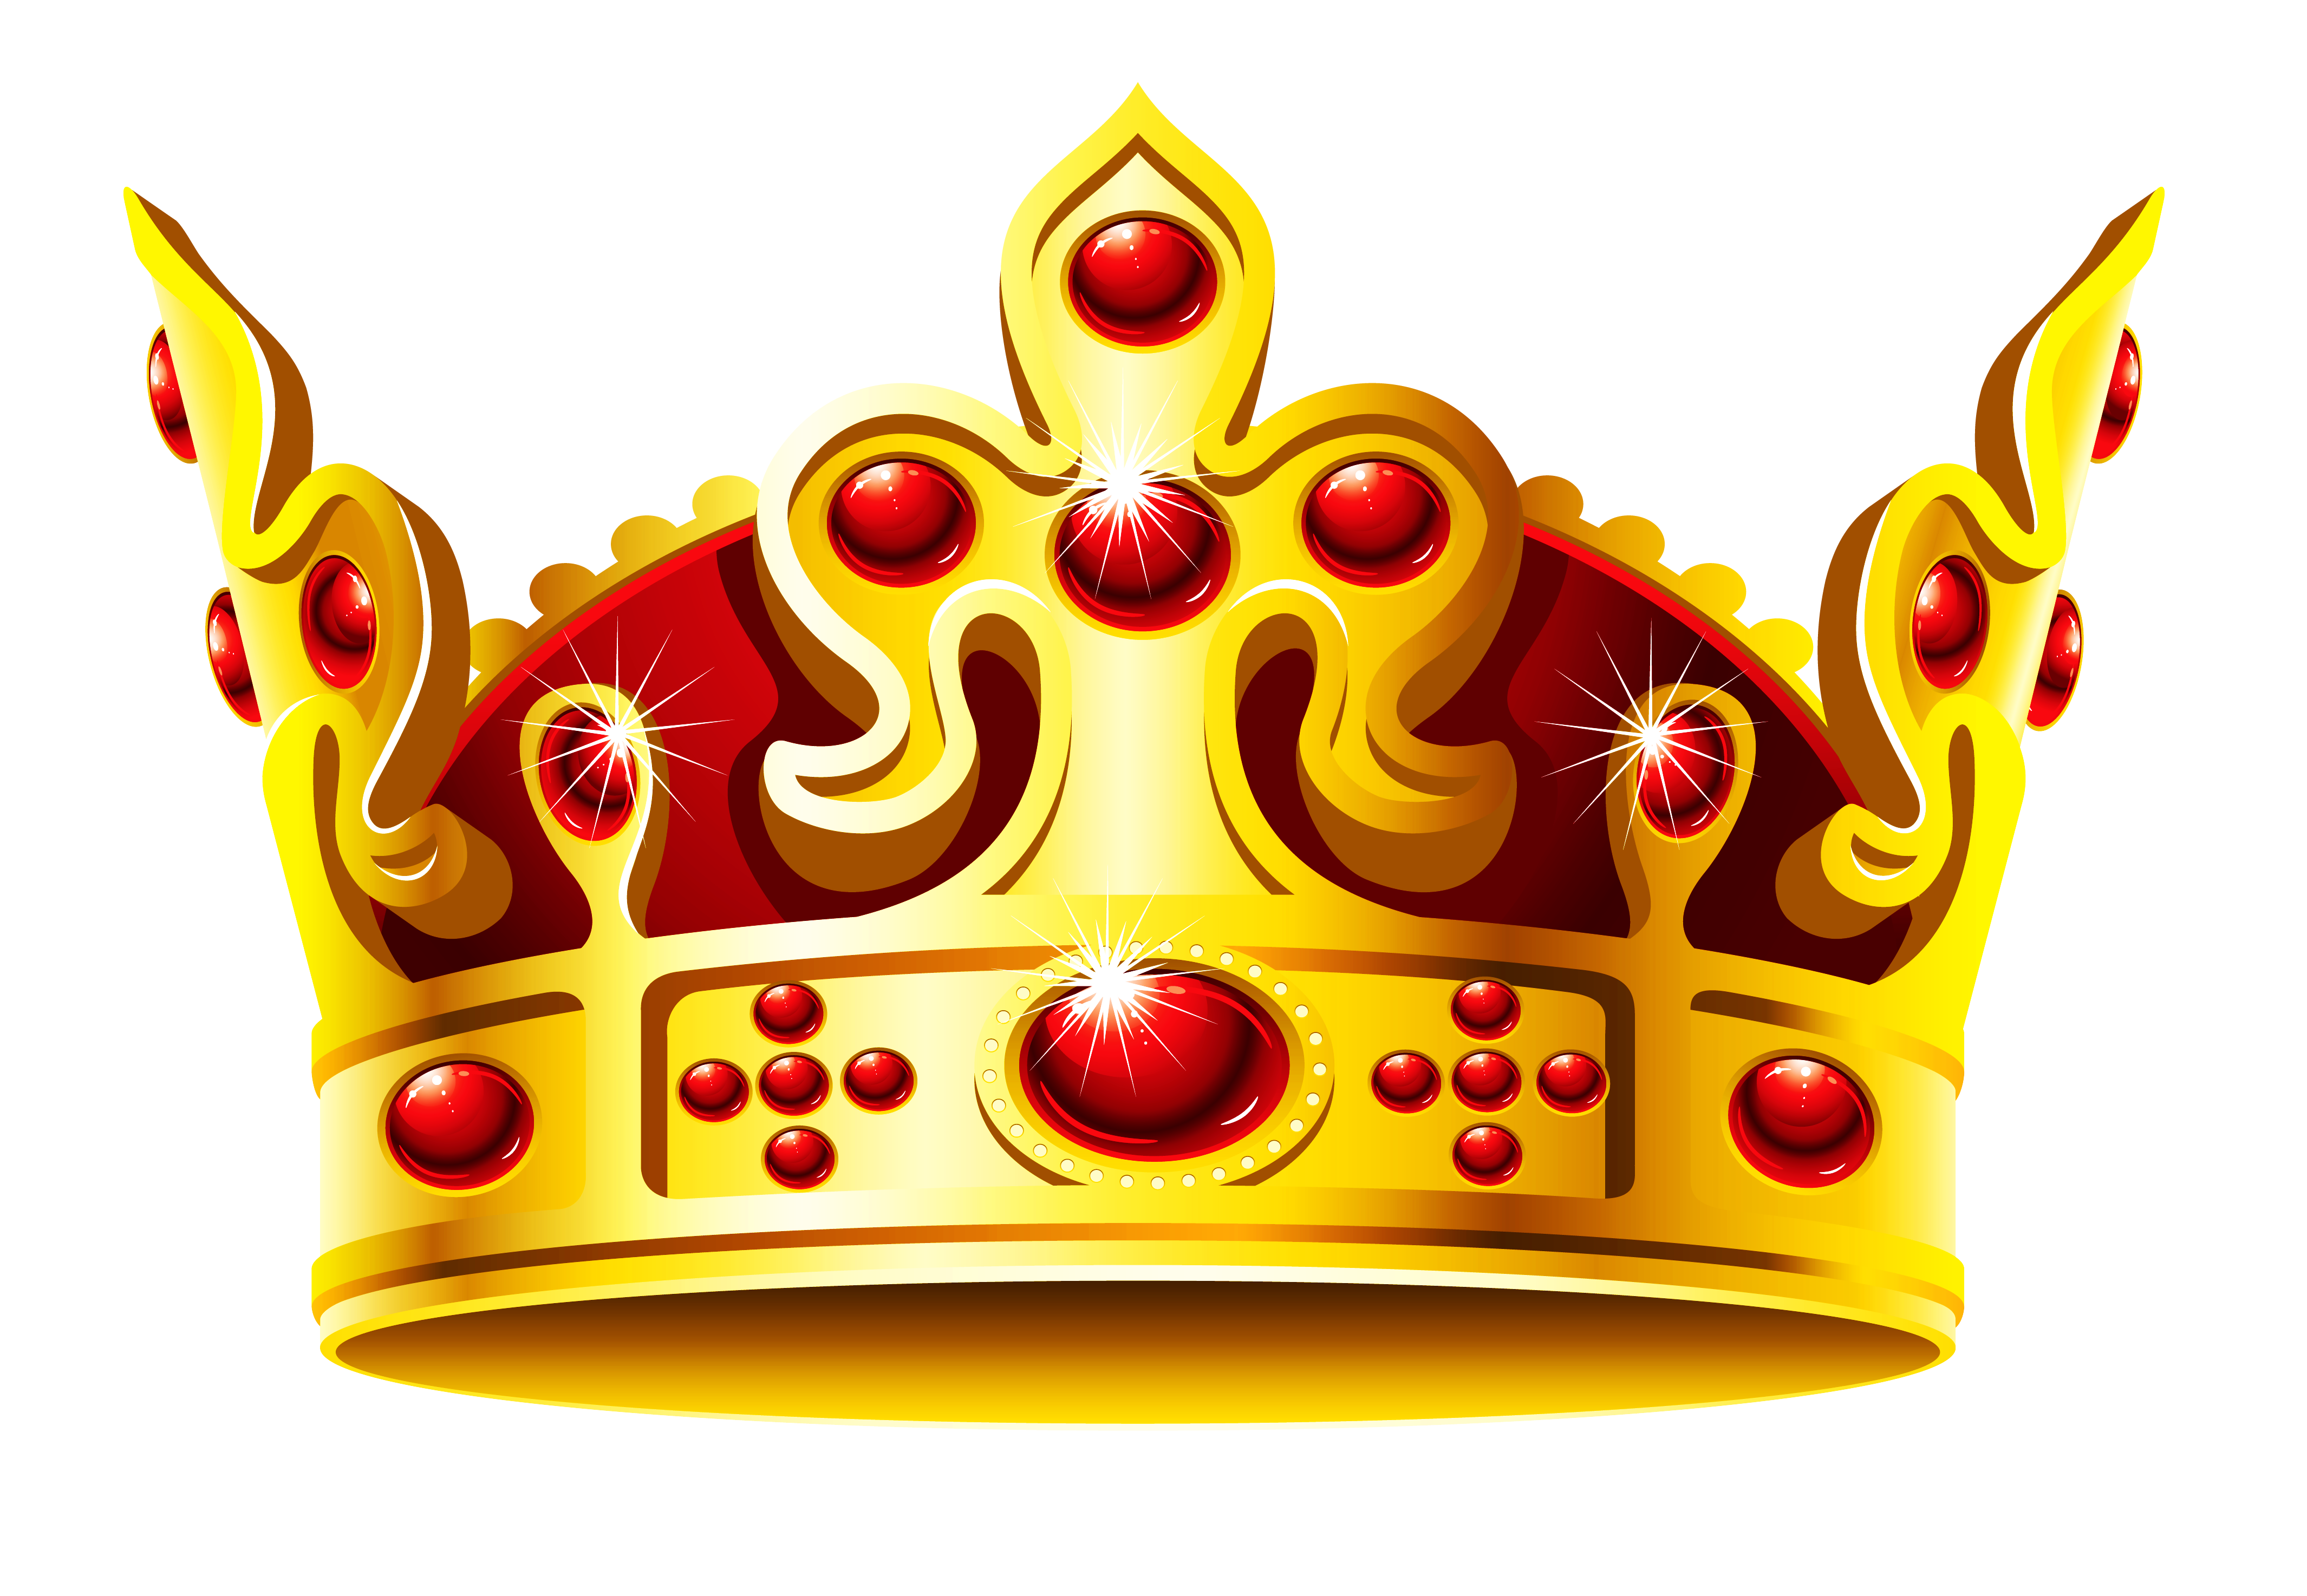 Gold bling crown clipart banner freeuse library Crown Clip art - crown jewels 4260*2948 transprent Png Free Download ... banner freeuse library